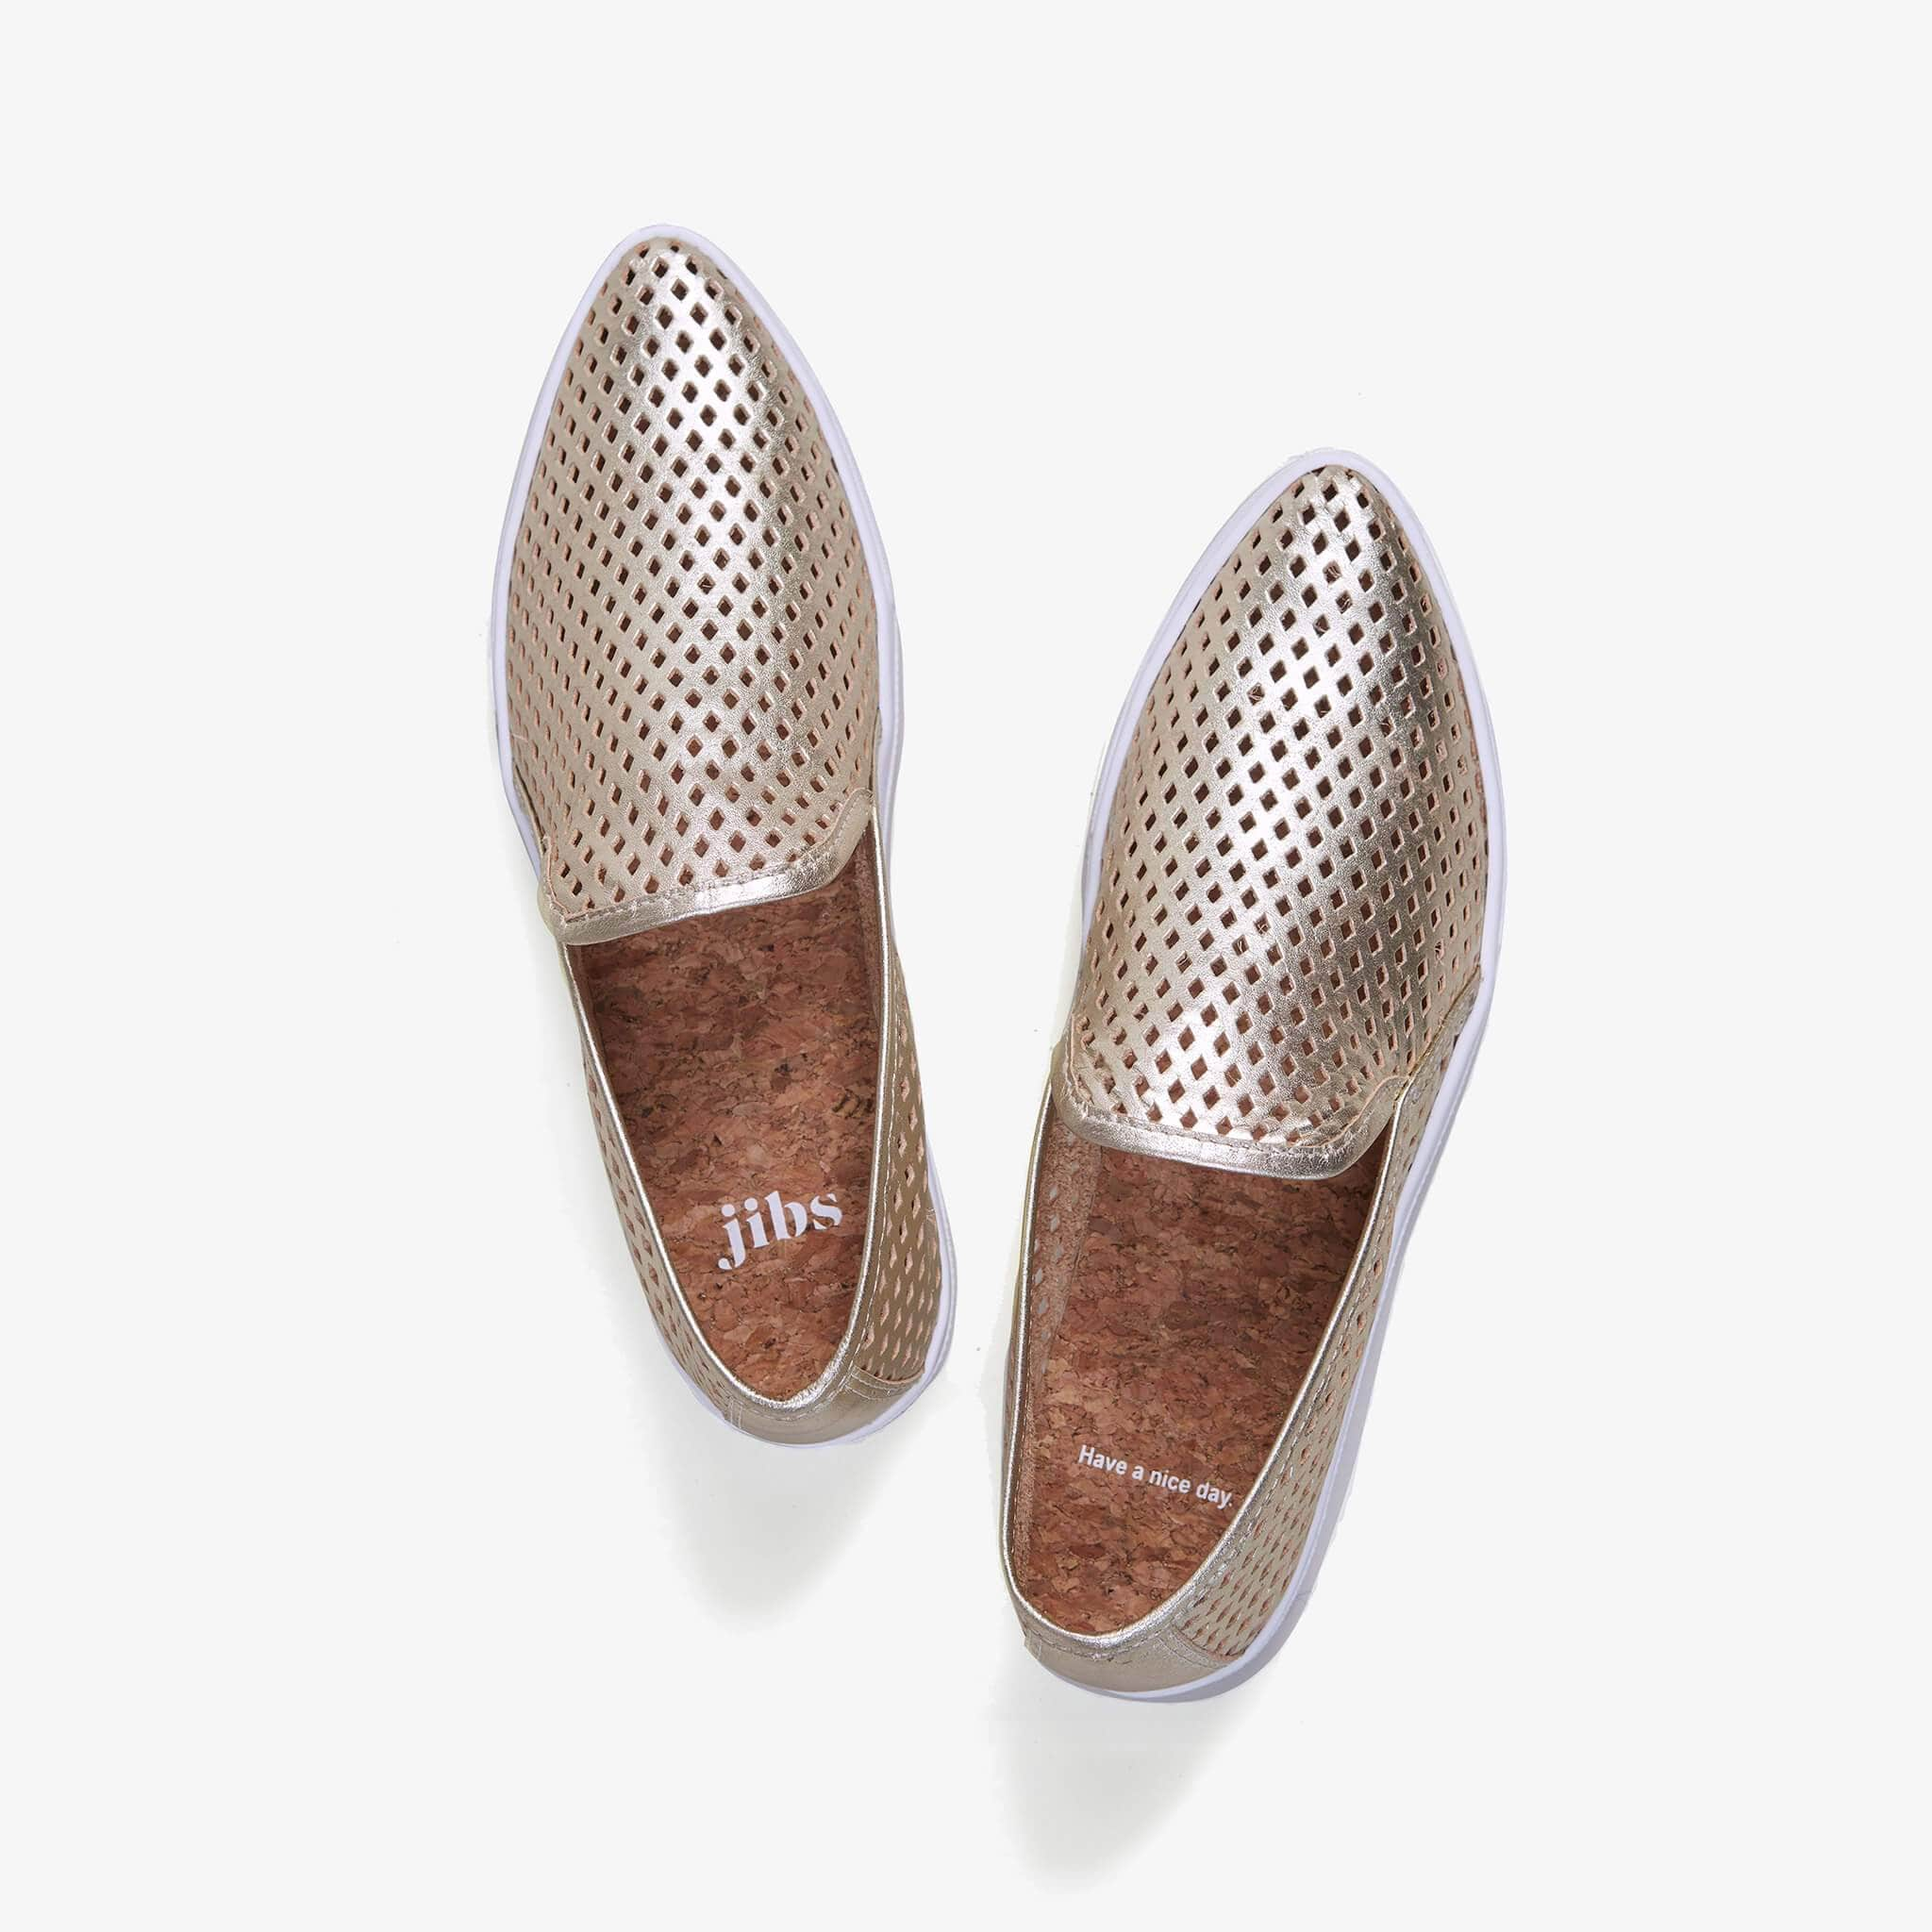 Jibs Slim Gold Slip On Sneaker Flat Top Have A Nice Day